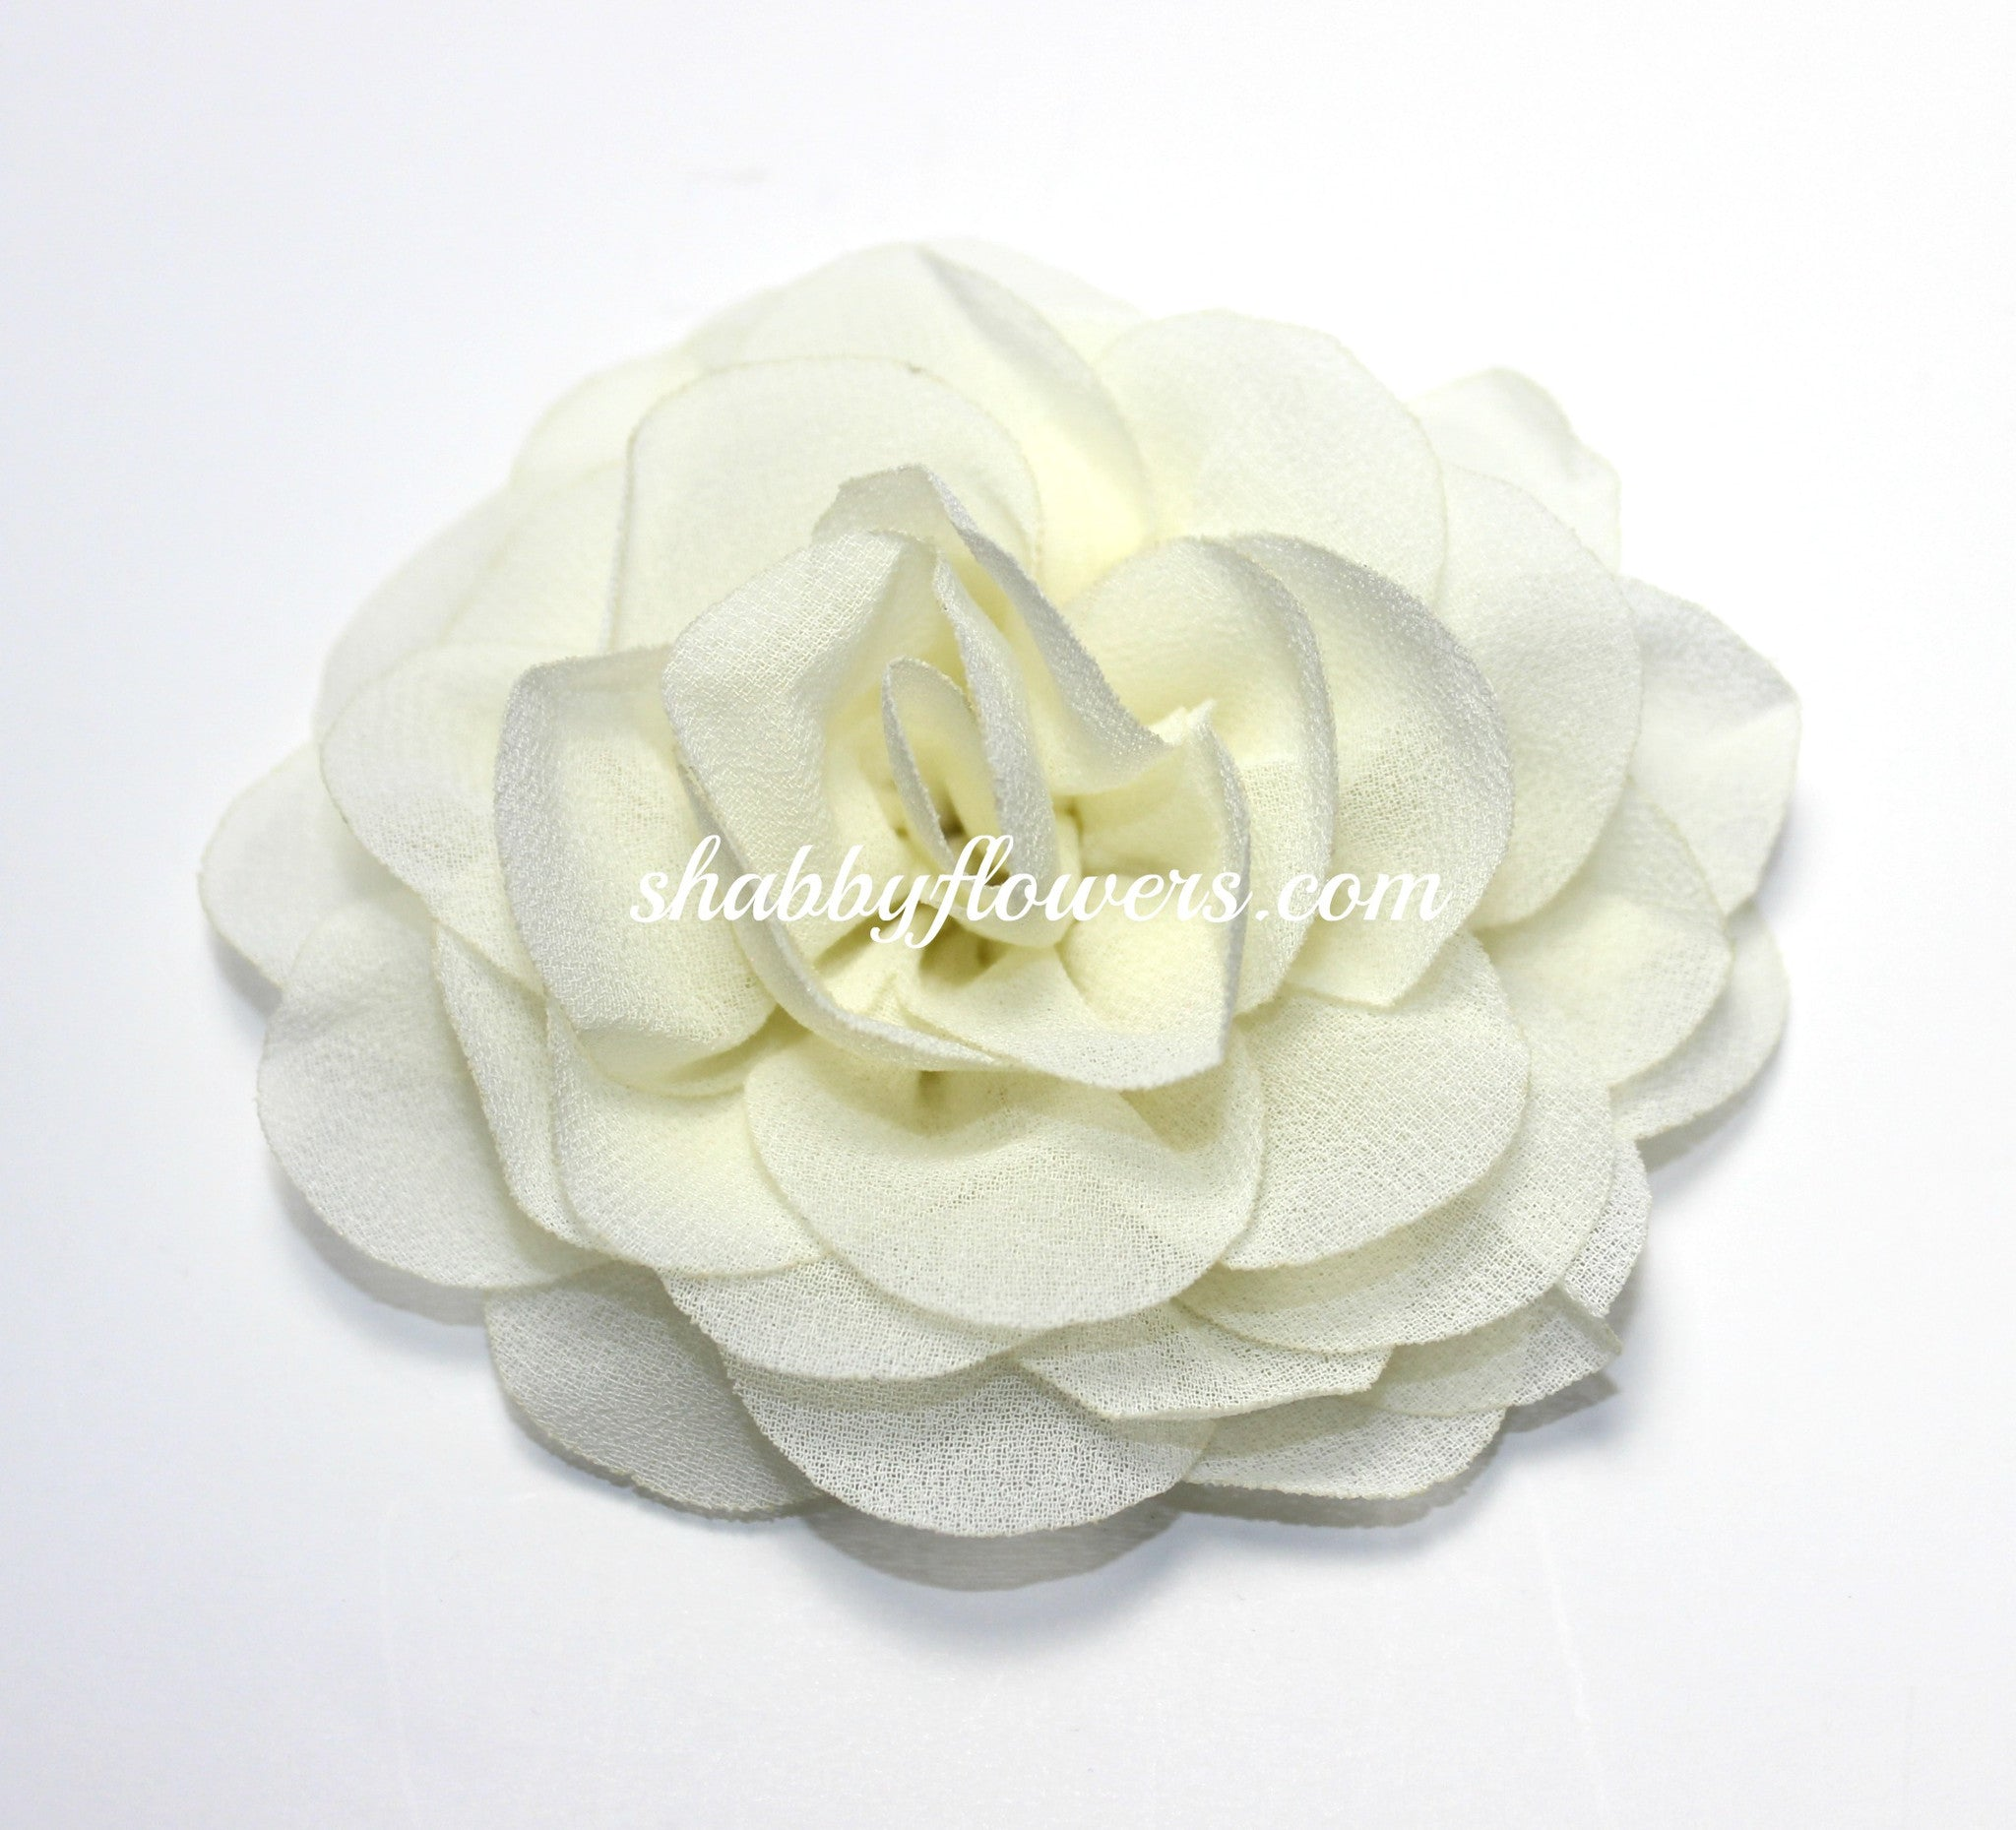 Rose - Ivory - shabbyflowers.com